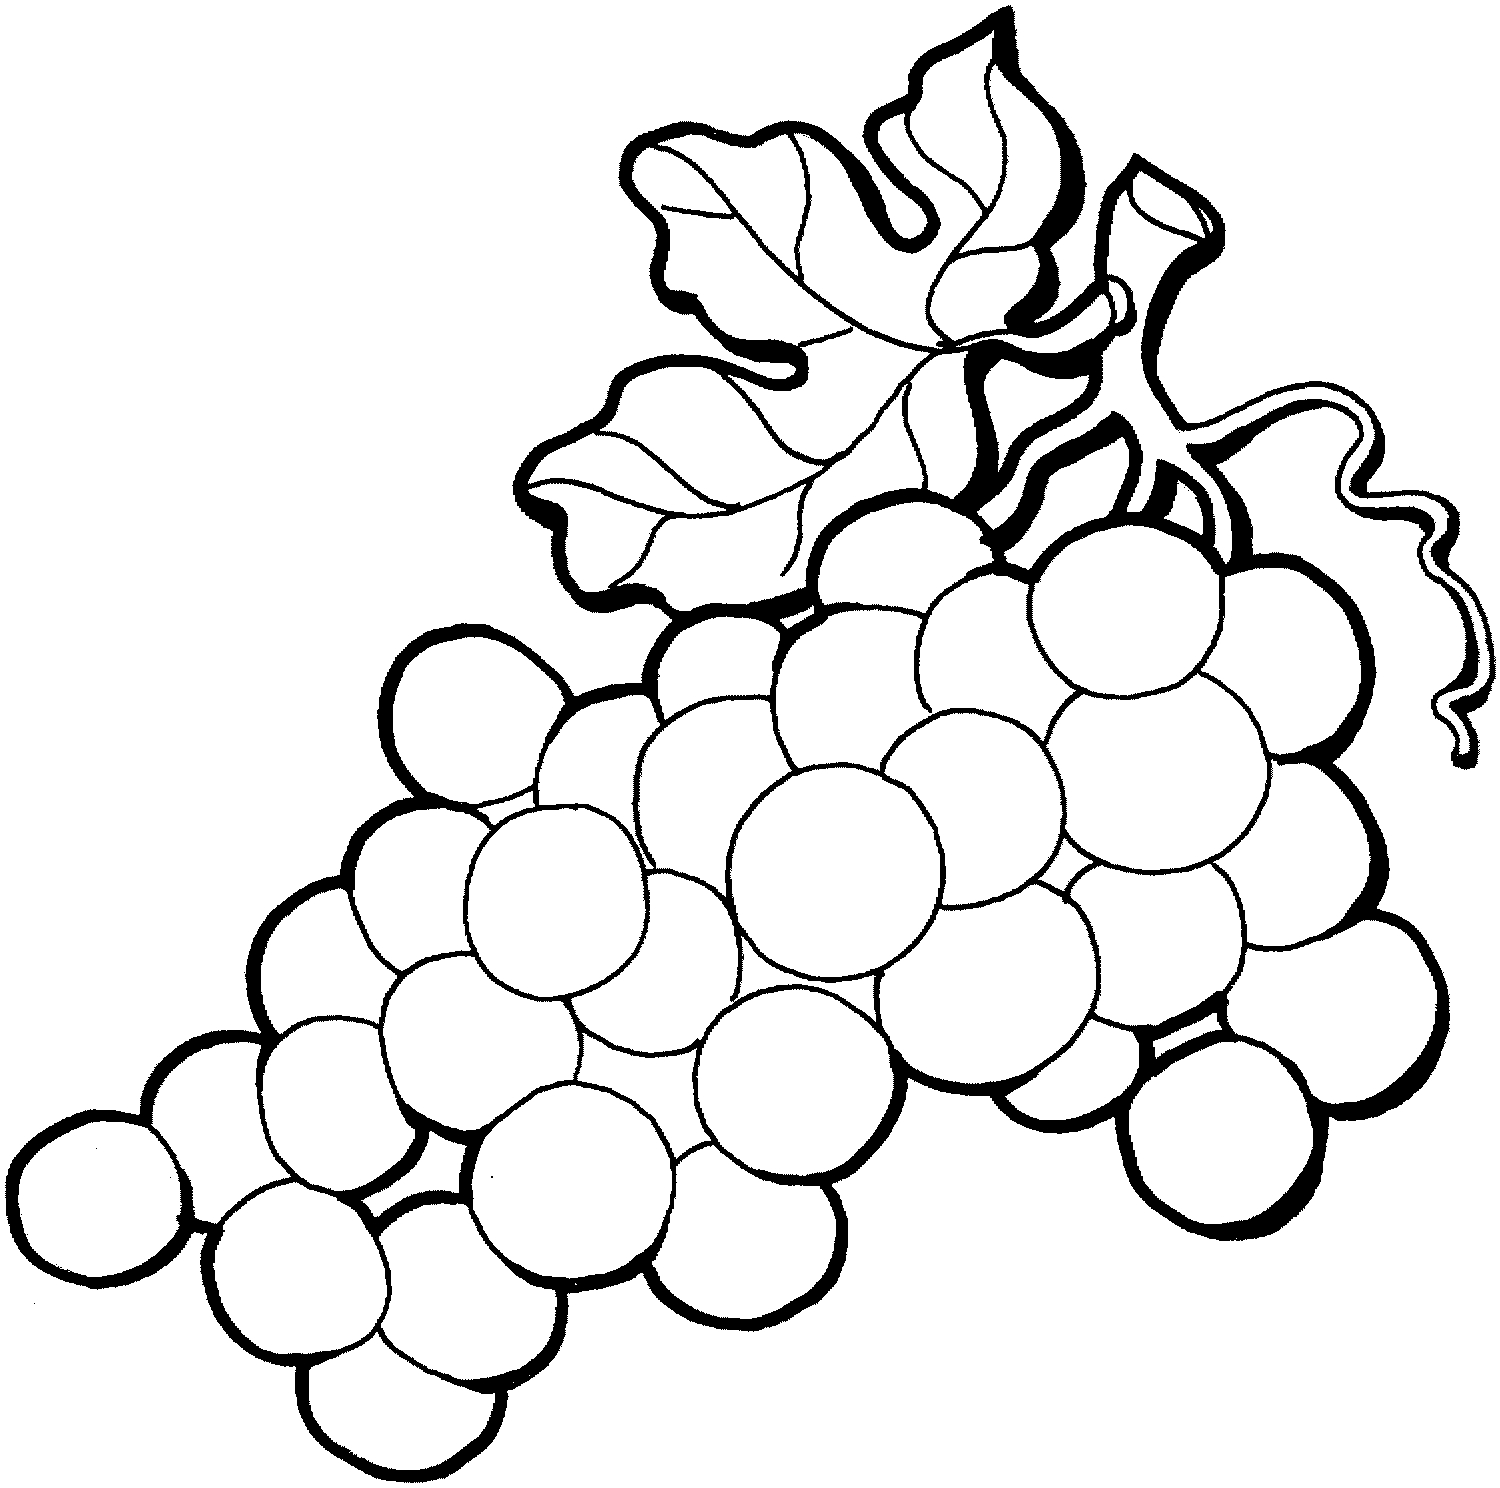 Black and white clipart grapes clip library stock Grapes clipart black and white Beautiful Grape clipart black and ... clip library stock